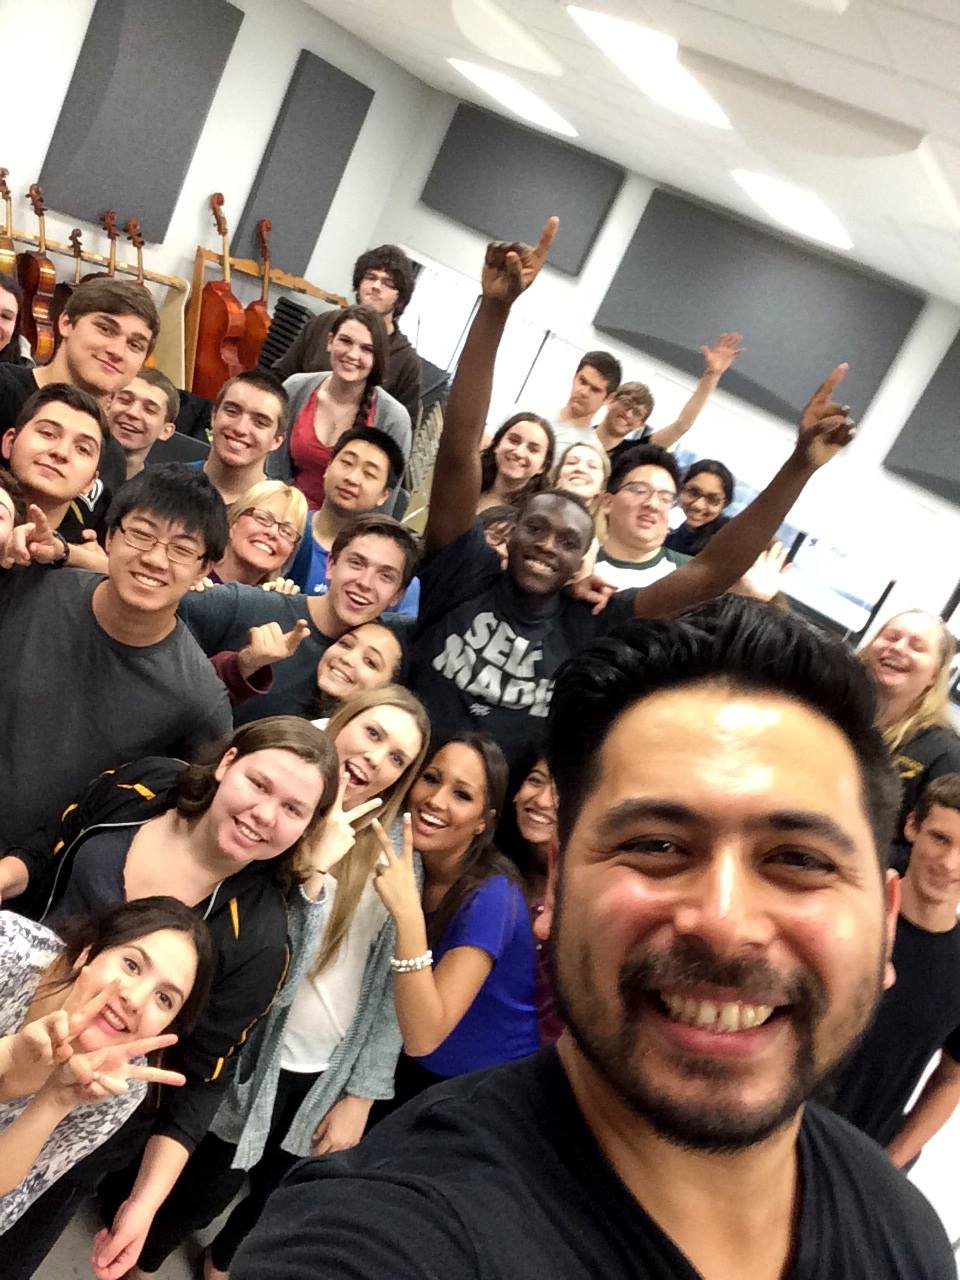 Selfie with Commack HS!